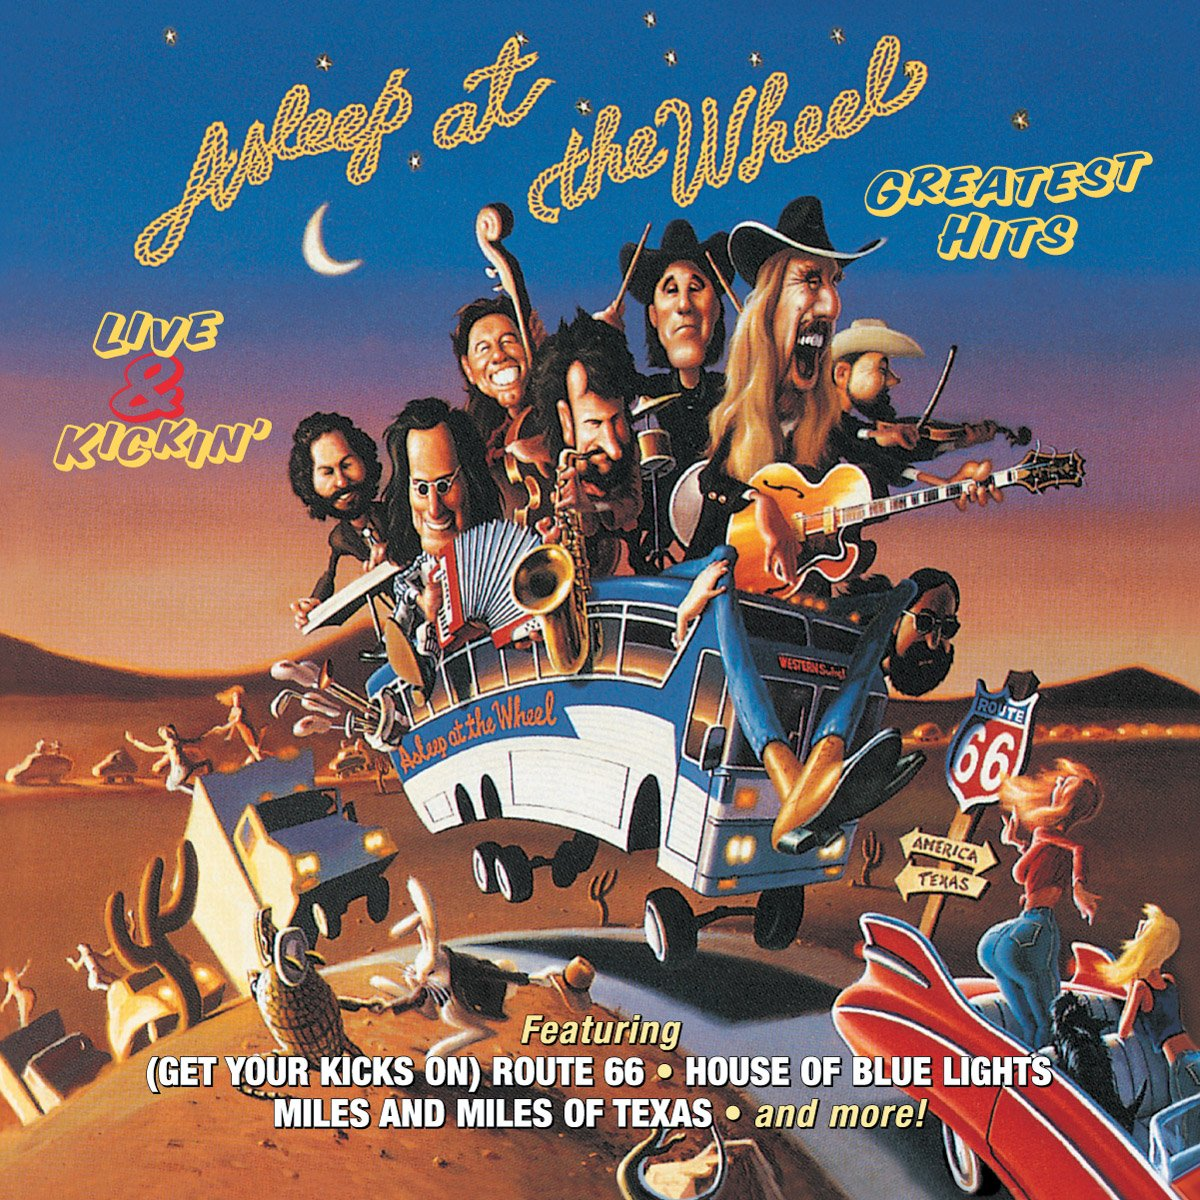 Asleep at the Wheel - Live & Kickin' Greatest Hits by Bmg Special Product